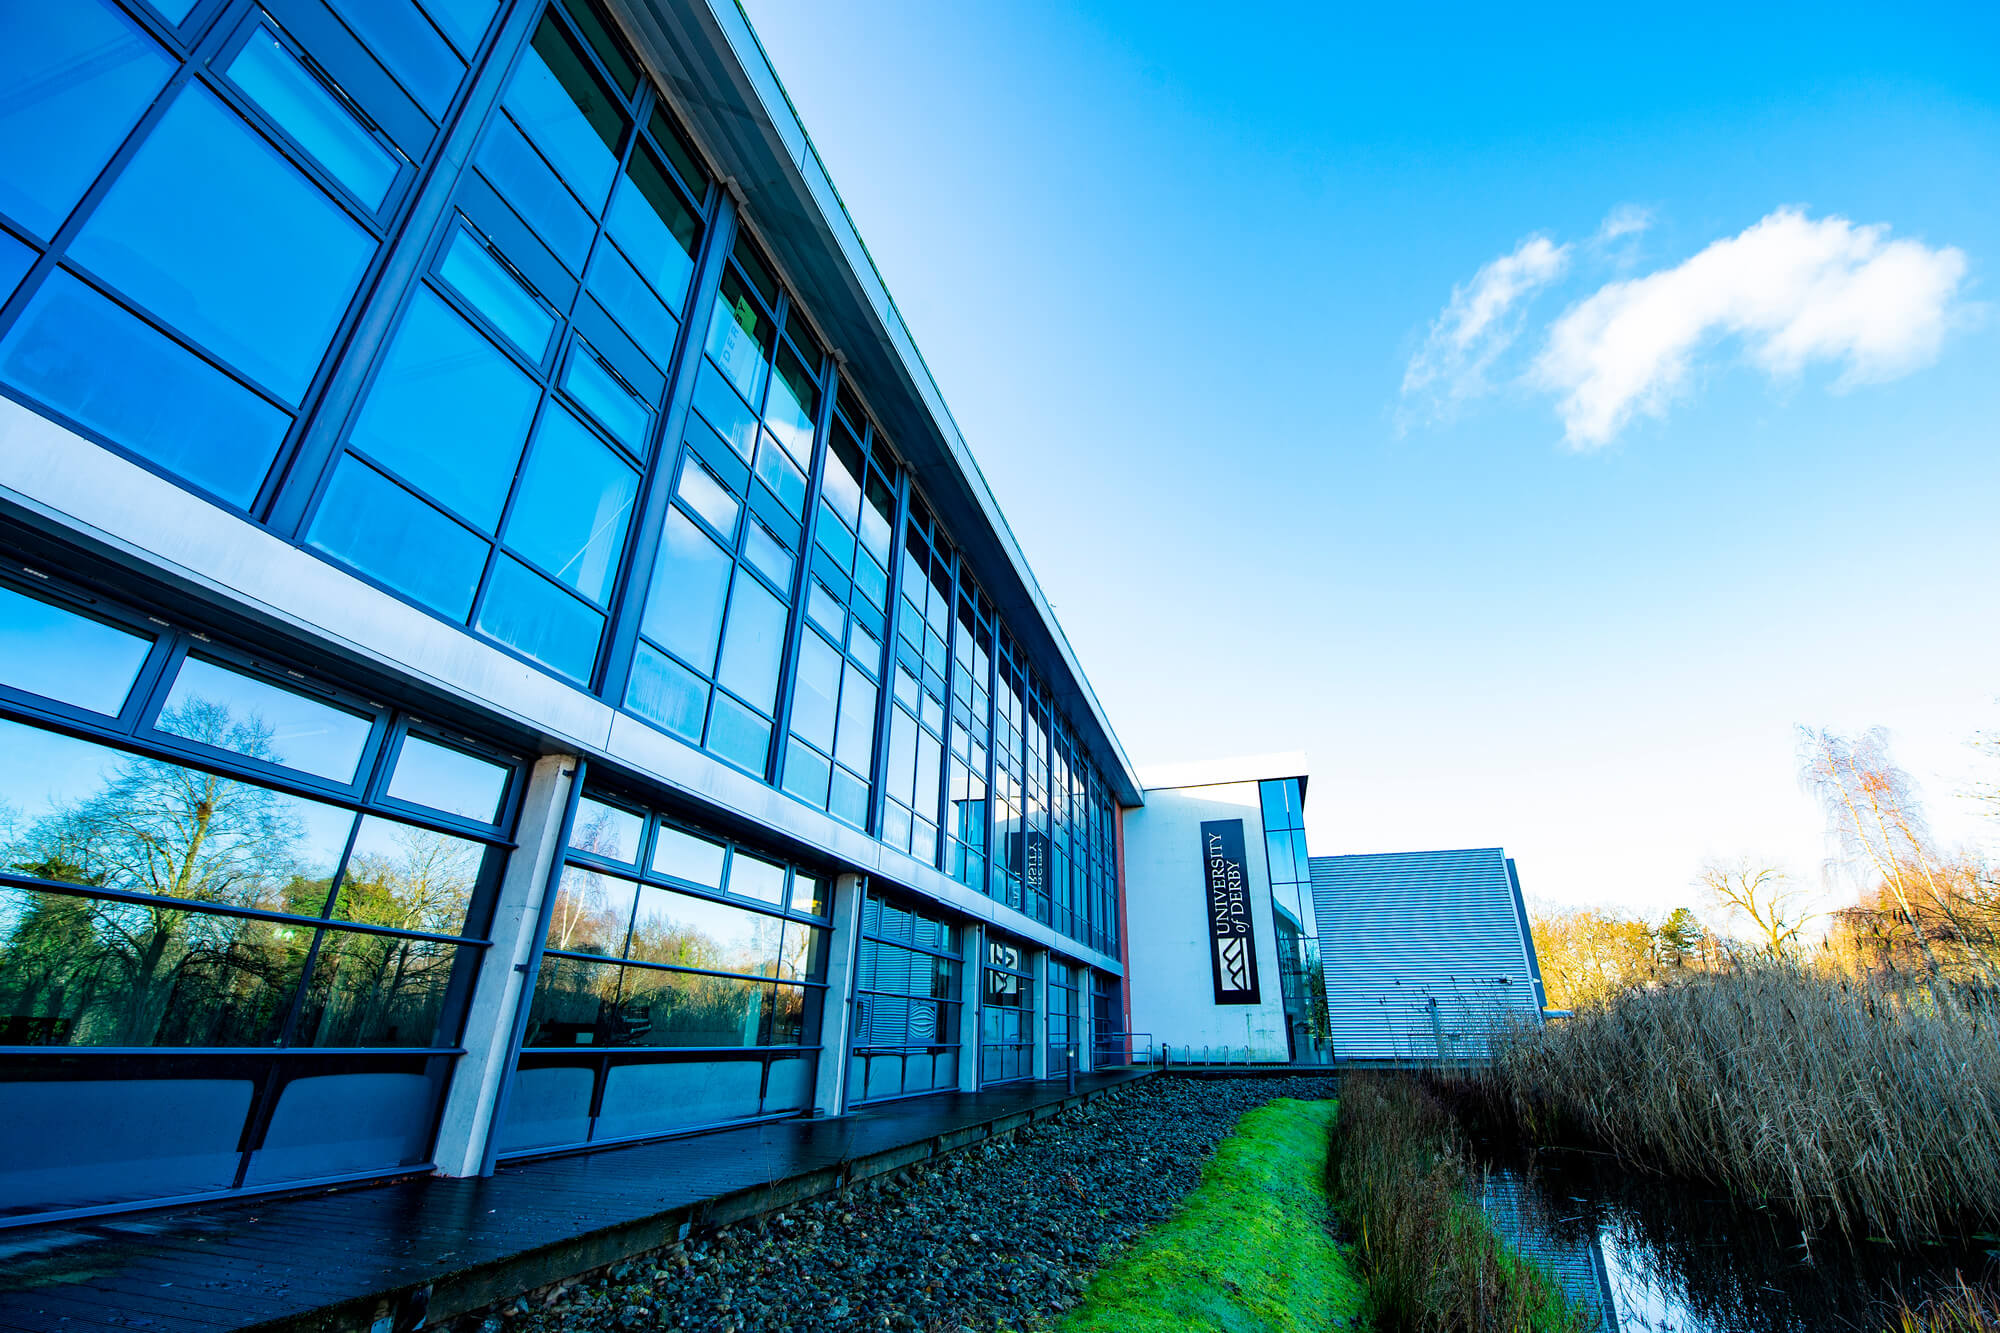 A modern glass fronted building with a brook and grass in front of it and blue sky background